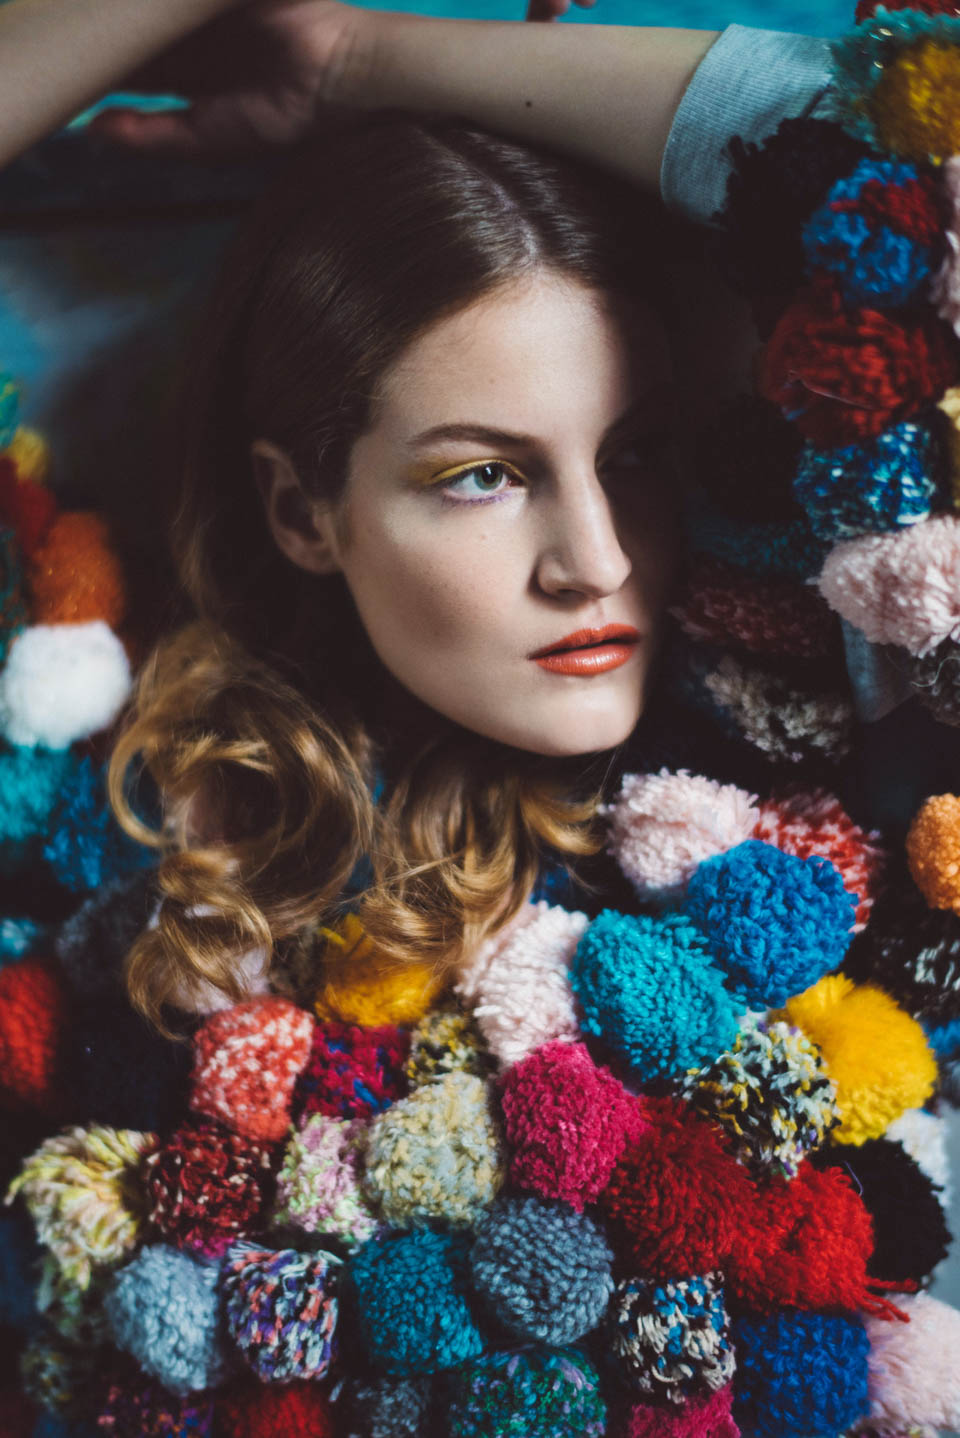 fashion editorial for cake magazine shot in cologne germany by fashion photographer erika astrid_24.jpg